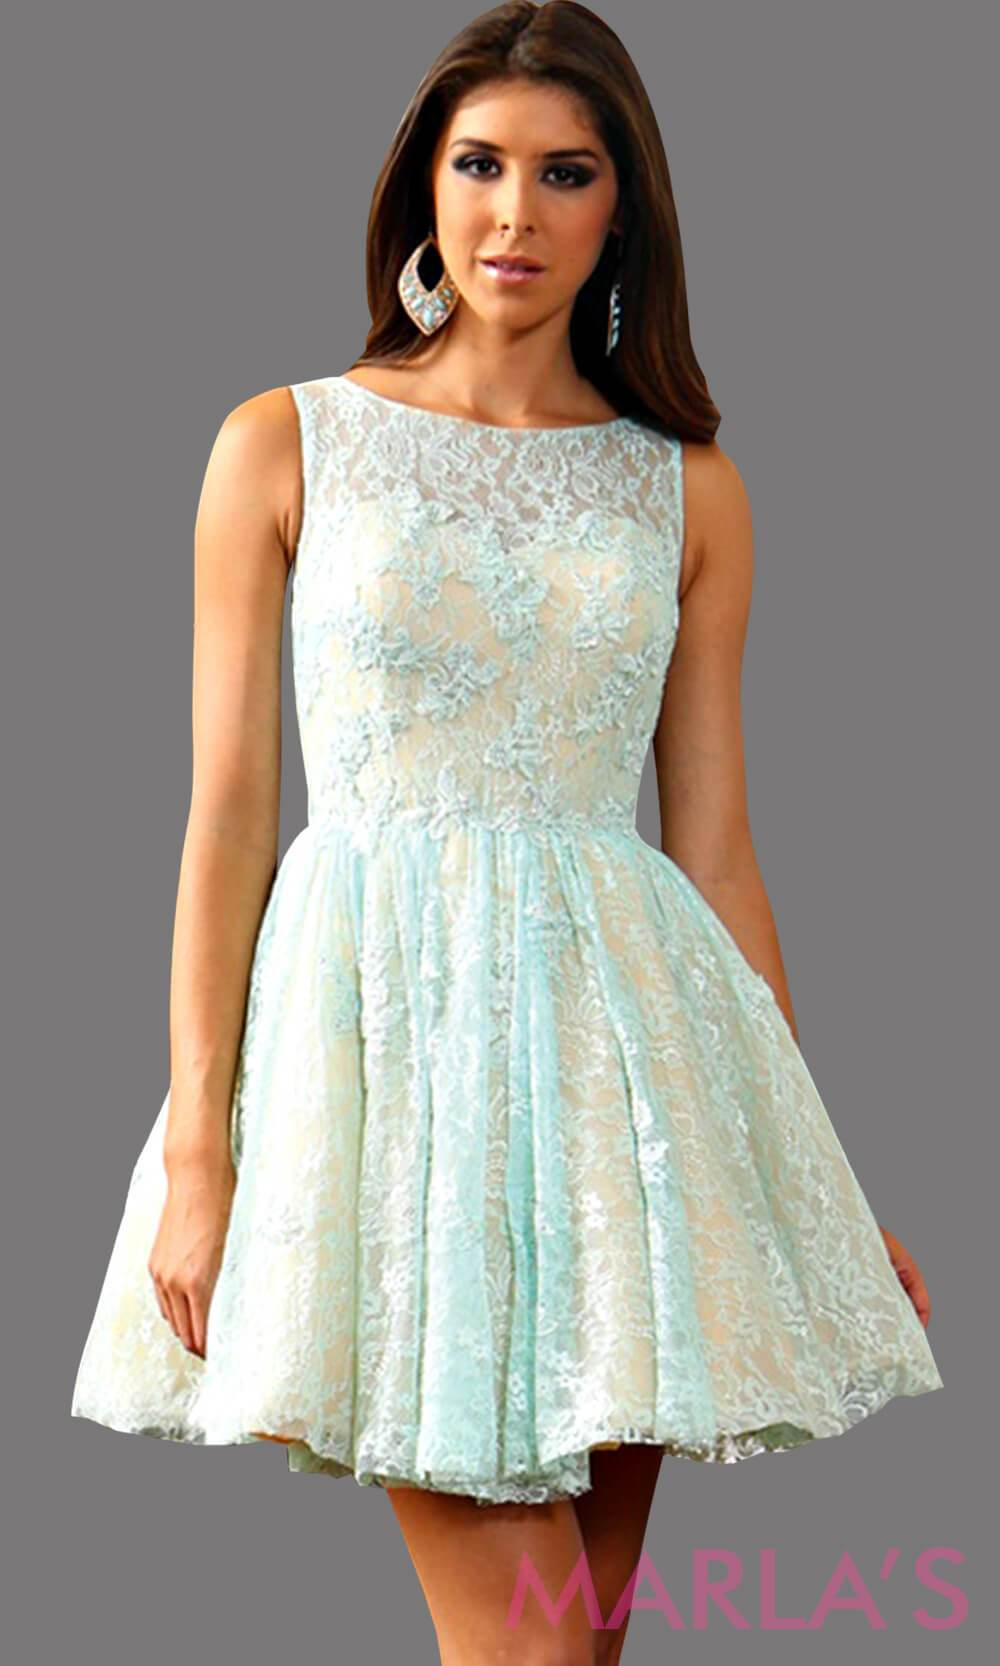 Short aqua lace dress with a high neck. This is available in plus sizes. This is the perfect grade 8 graduation dress, light blue damas dress, and homecoming